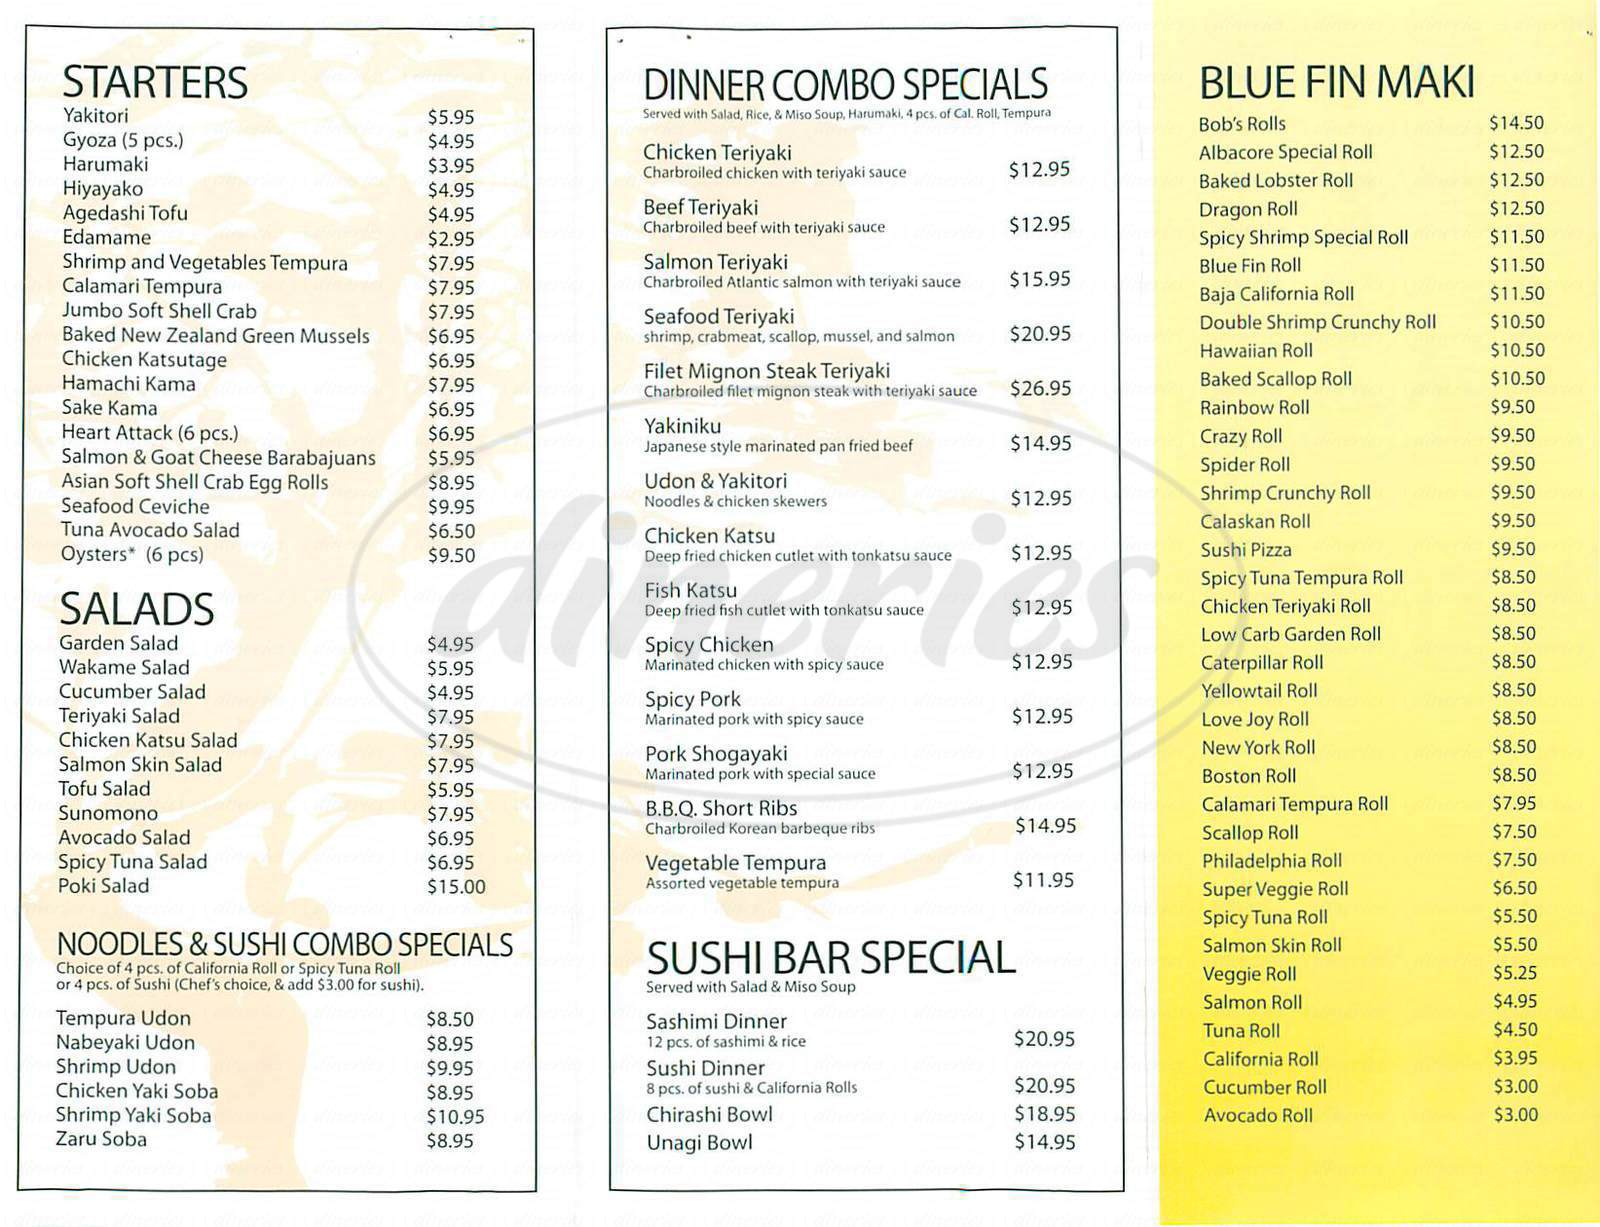 menu for Bluefin